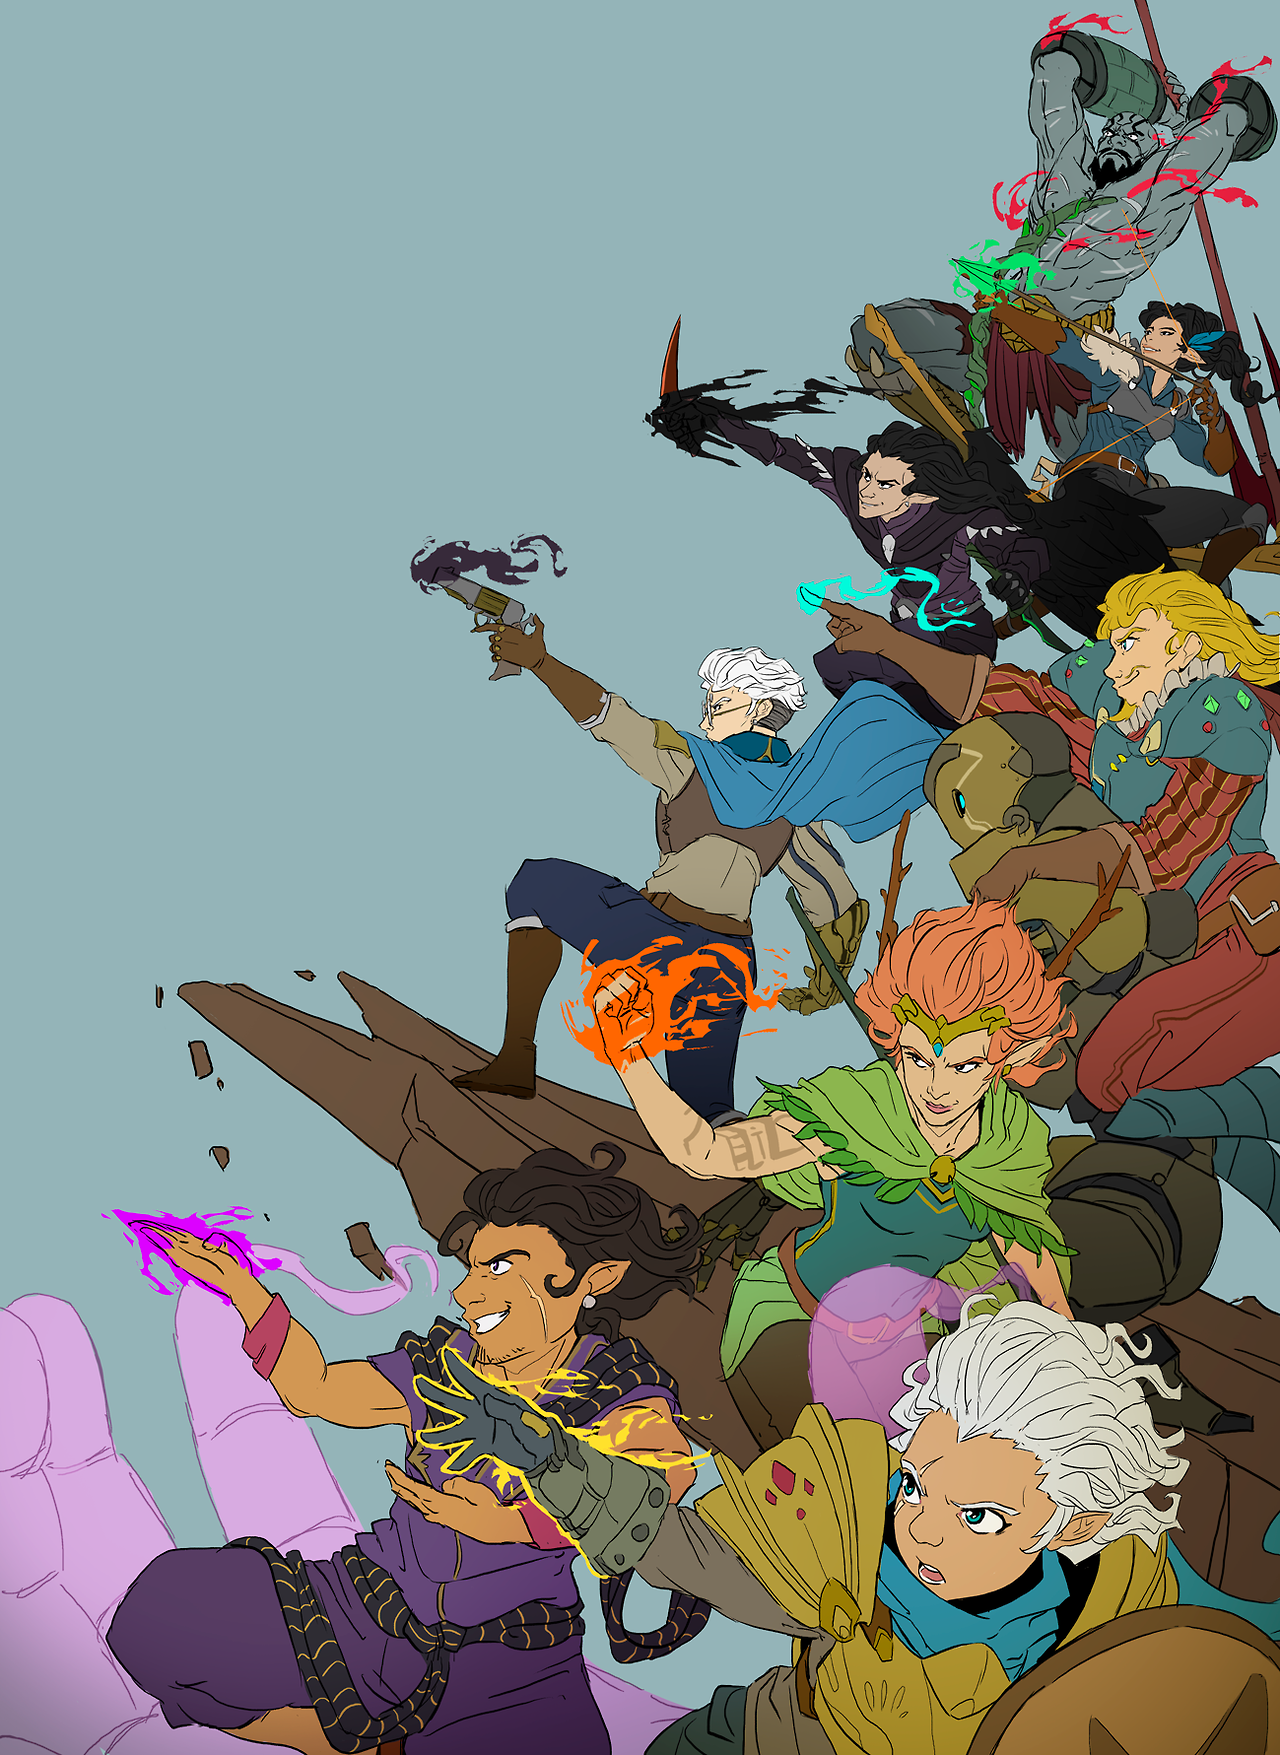 Critical Role Fan Art Gallery Stories That You Paint By The Fire Geek And Sundry Critical Role Fan Art Critical Role Characters Critical Role The fandom nickname for fans of the show is critters. pinterest